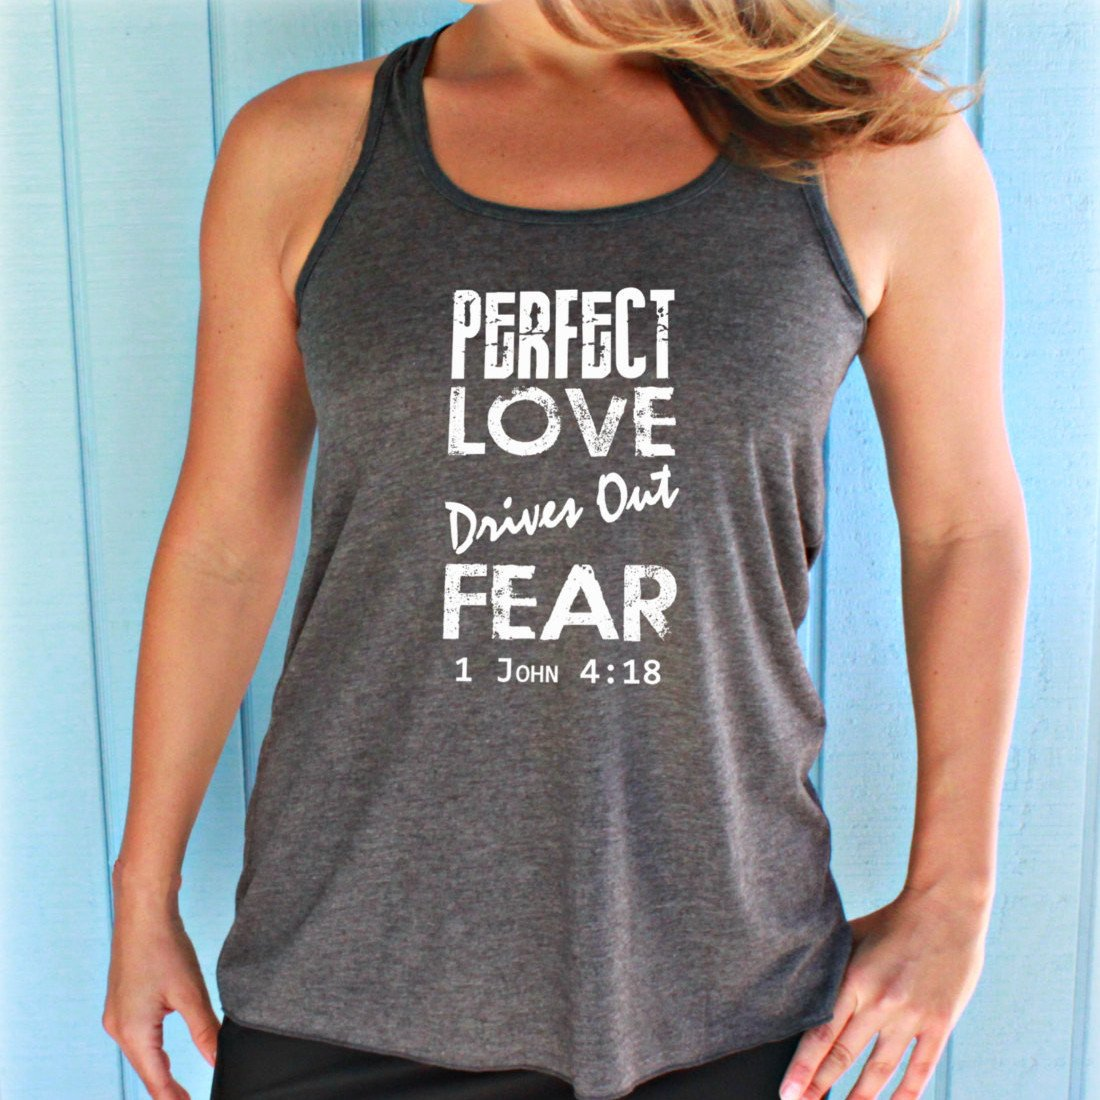 Womens Flowy Workout Tank Top. Perfect Love Drives Out Fear Bible Verse. Motivational Workout Clothing. Christian Clothing. Running Tank Top 11